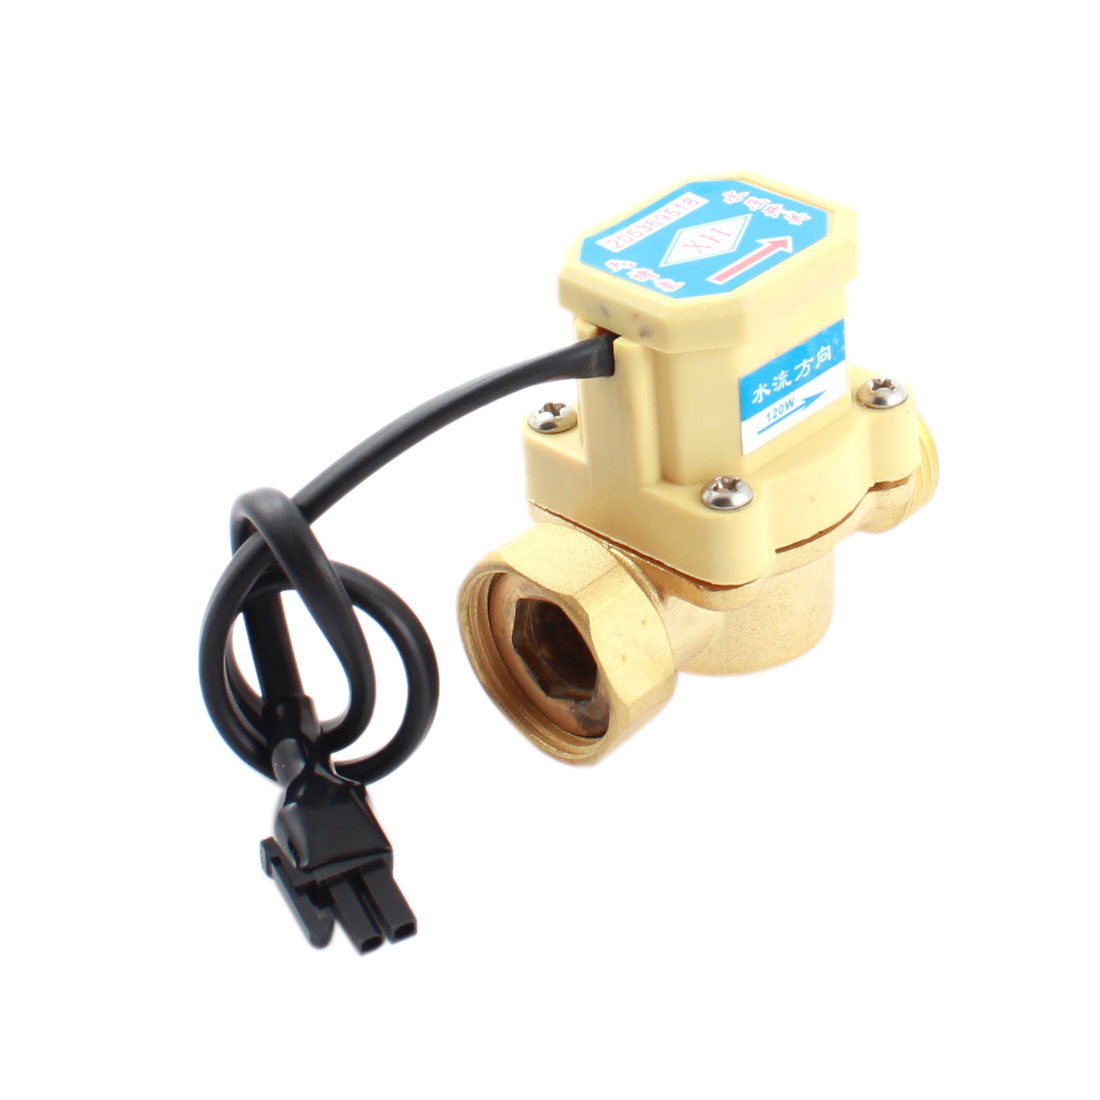 0.6Mpa 0.75-5L/min 1/2PT Male to 3/4PT Female Thread Water Fluid Flow Sensor Controller Flowmeter Switch DC 5-18V 120W